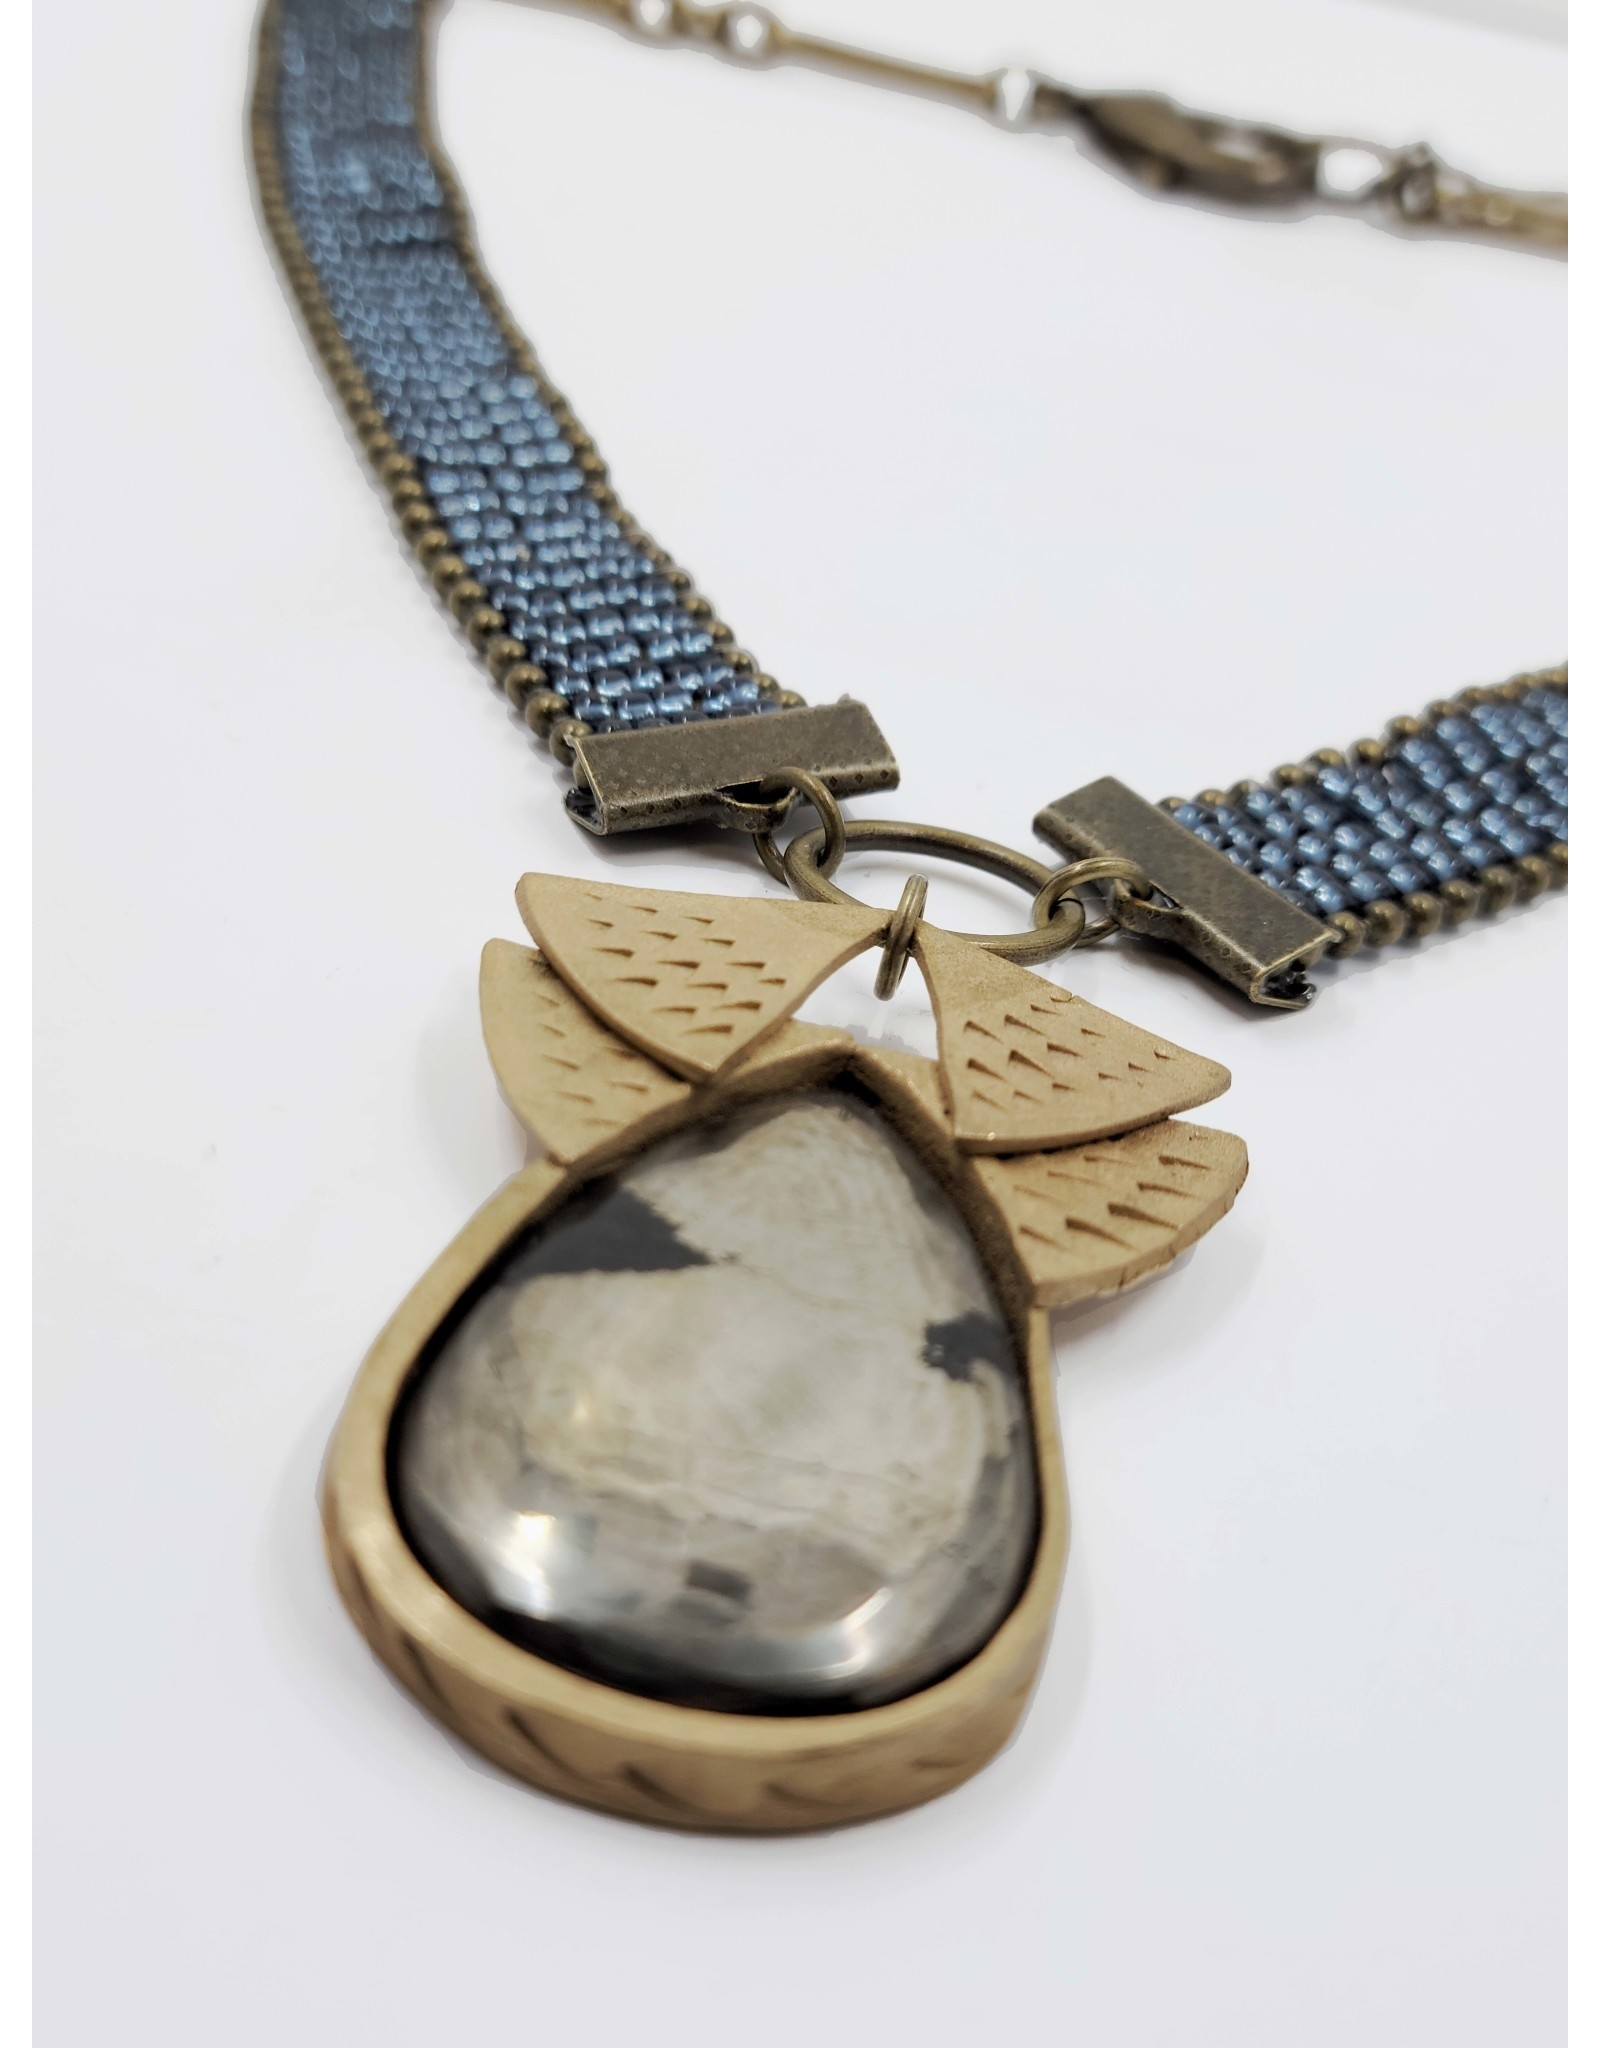 Slate Blue Beaded Necklace with Gray Pendant